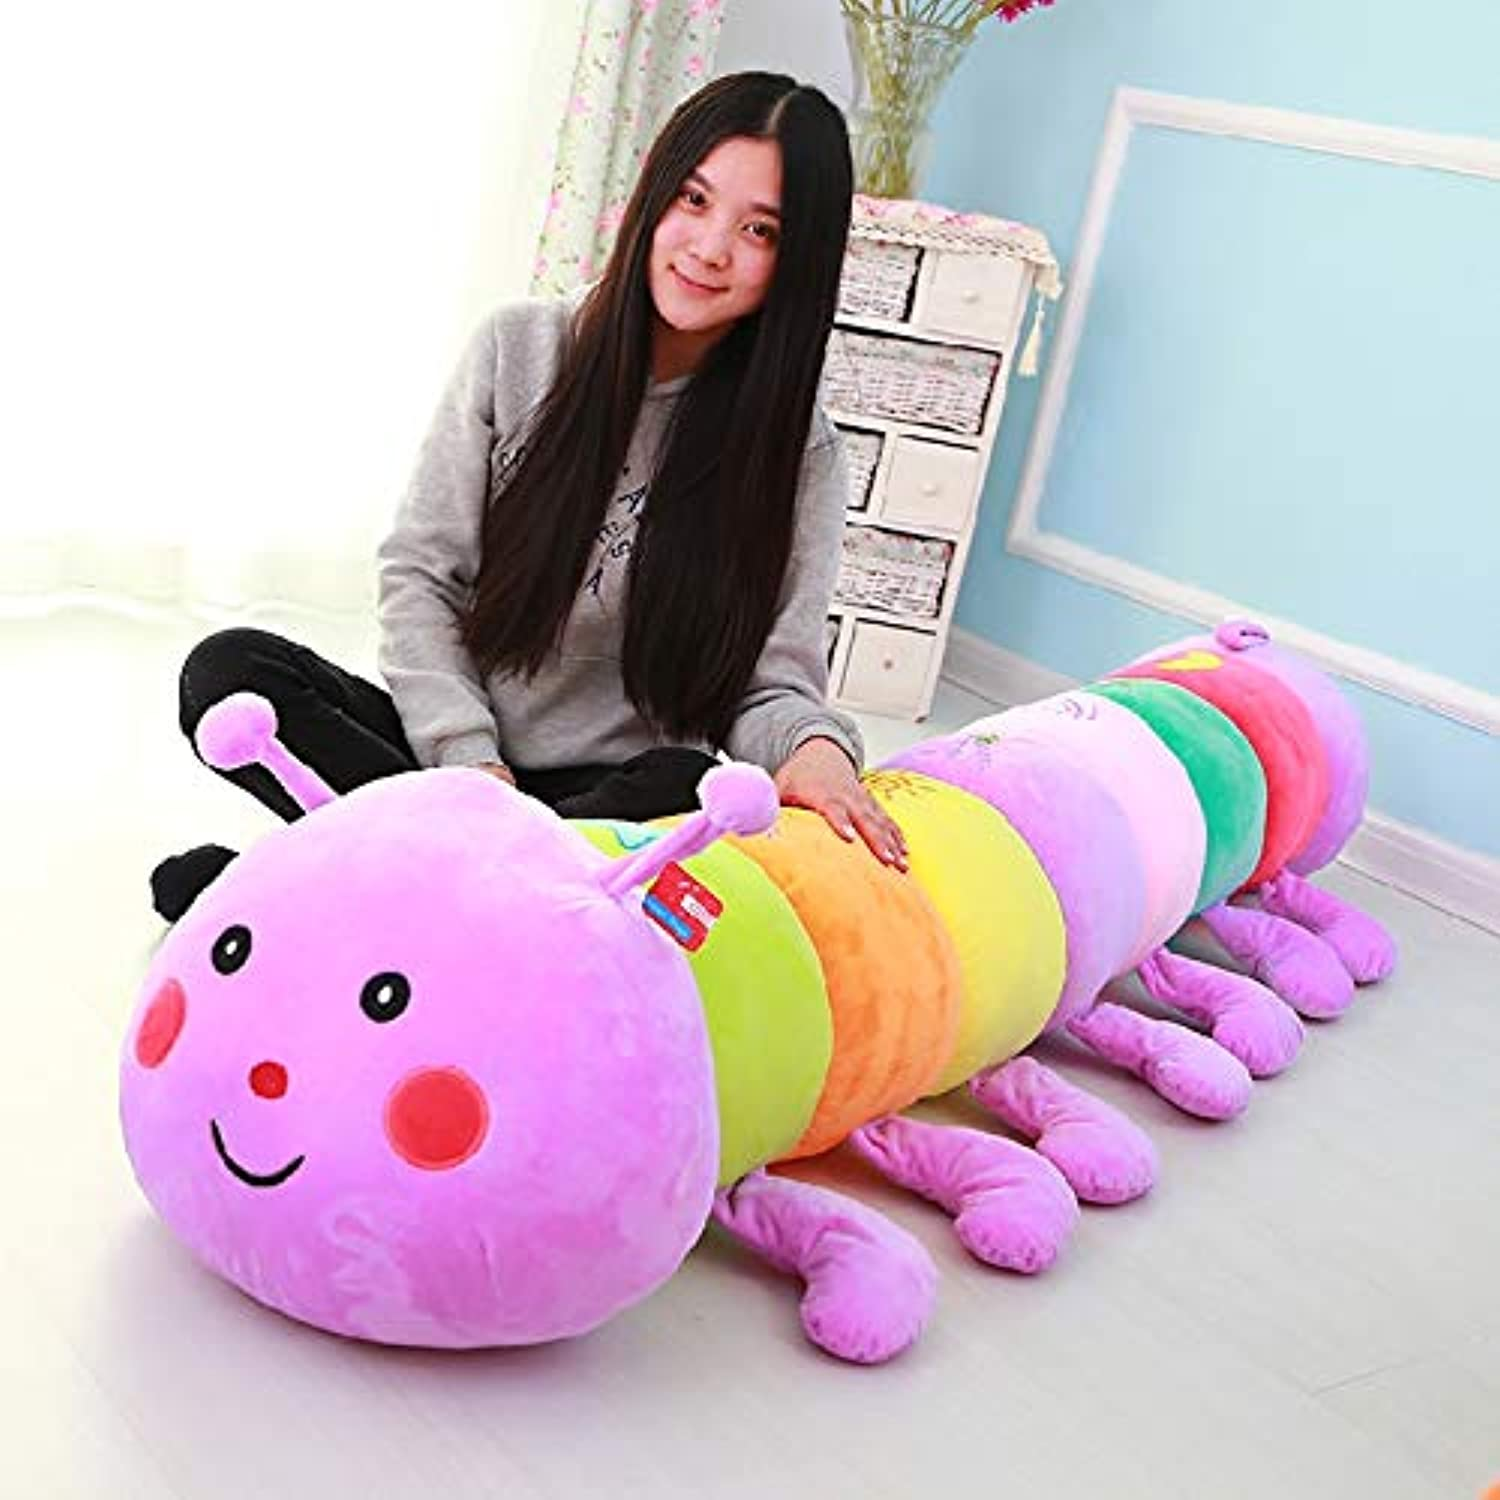 DONGER Caterpillar Toy Oversized Bug Doll Doll Cute Pillow Creative Tanabata Birthday Gift, Lavender Purple, 90 Cm